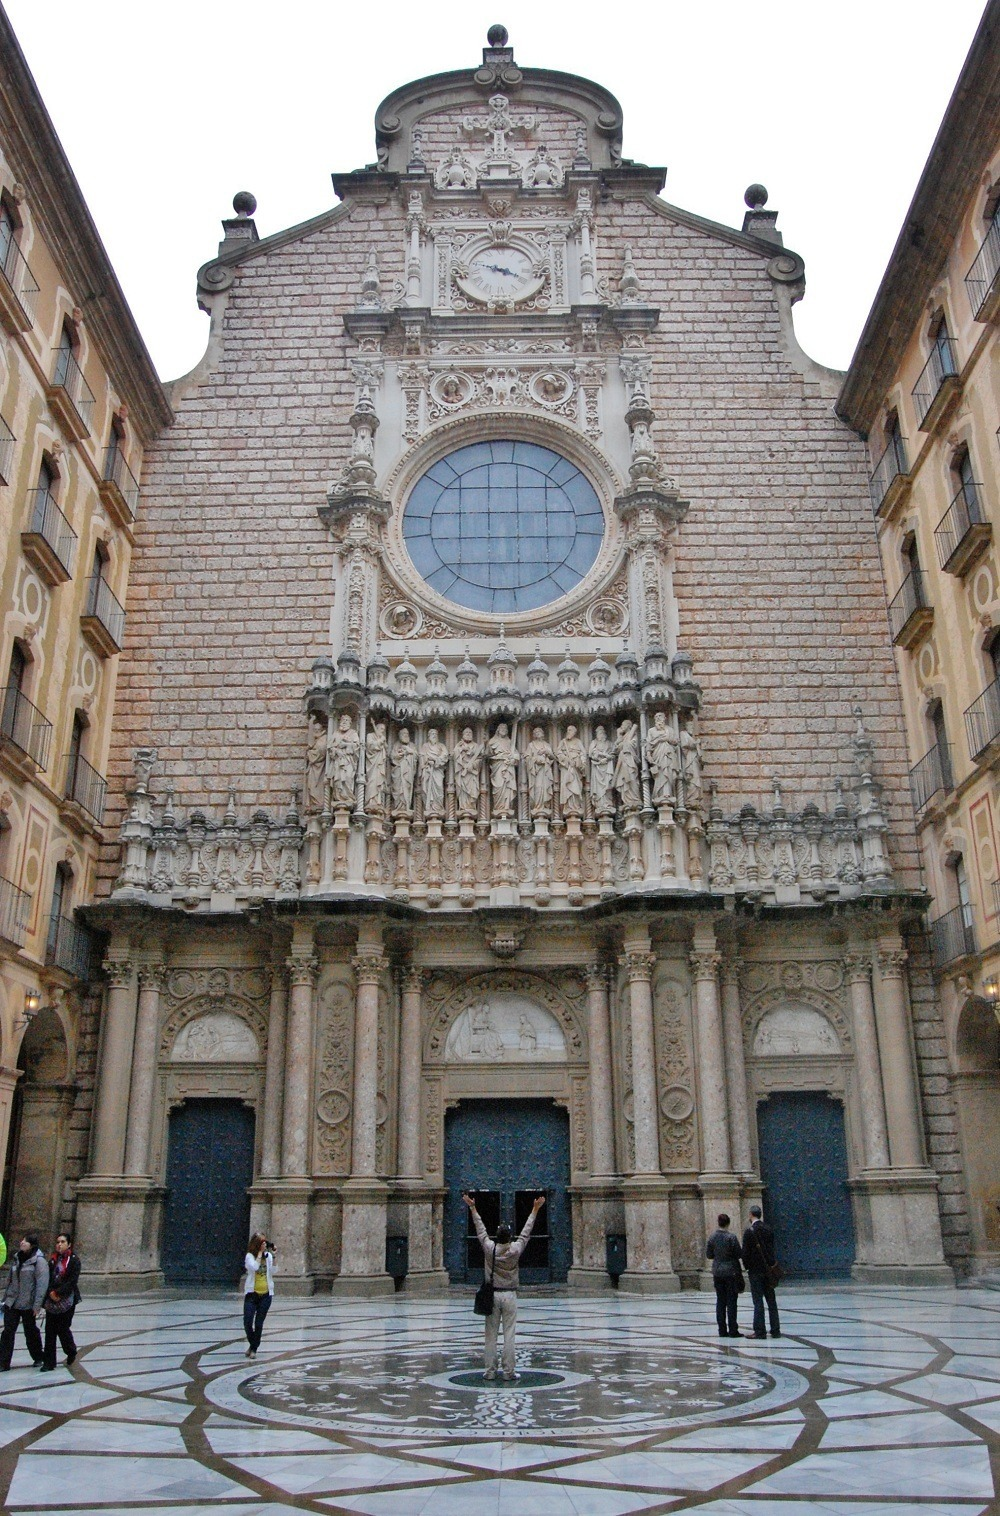 Again, not my photo but here is the entrance to the Catholic Basilica where the Choir Boys were to perform.